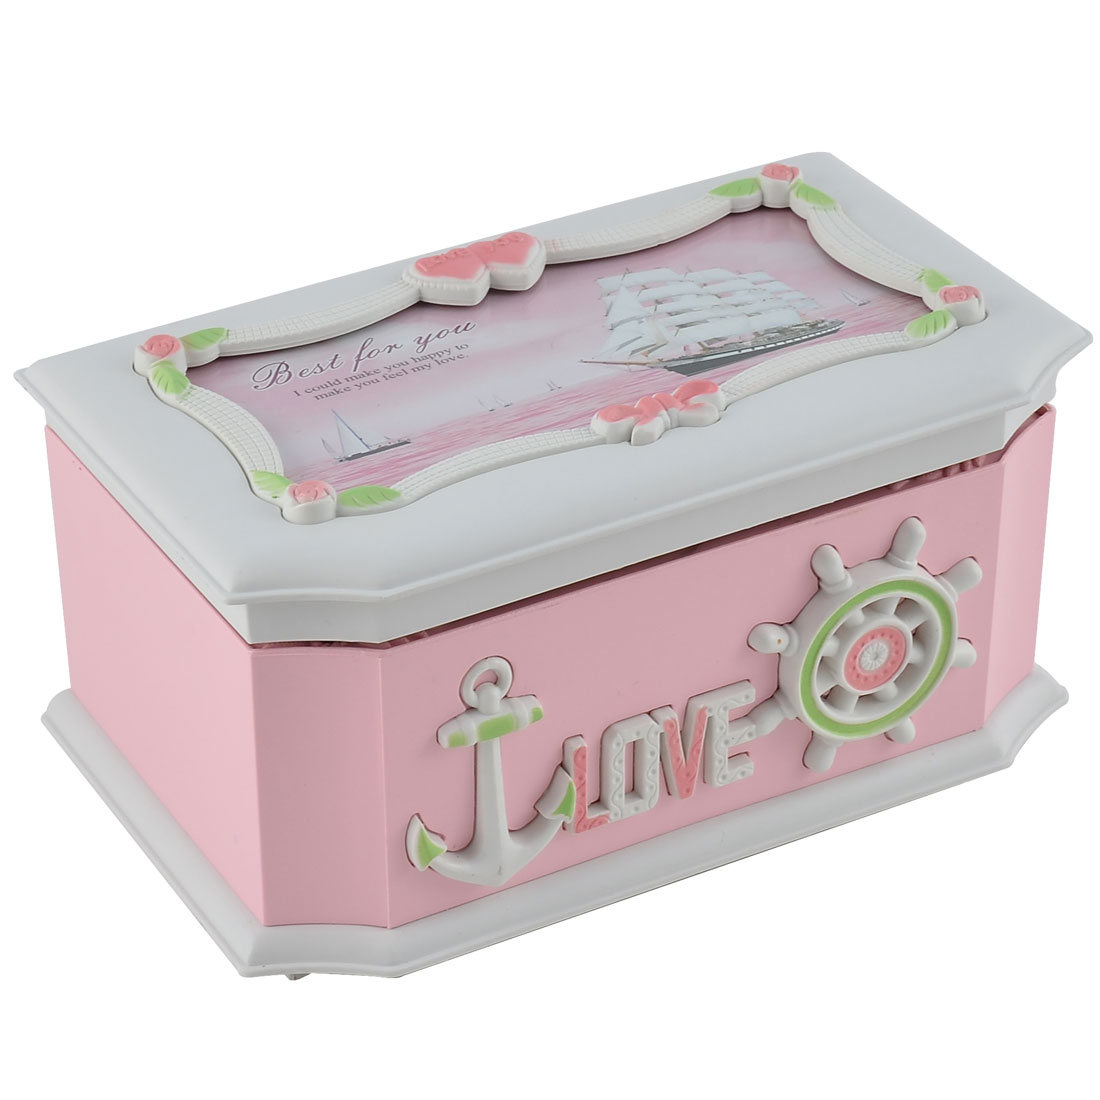 Birthday Gift Plastic Rectangular Shaped Sailboat Pattern Jewelry Music Box Desktop Decor Pink